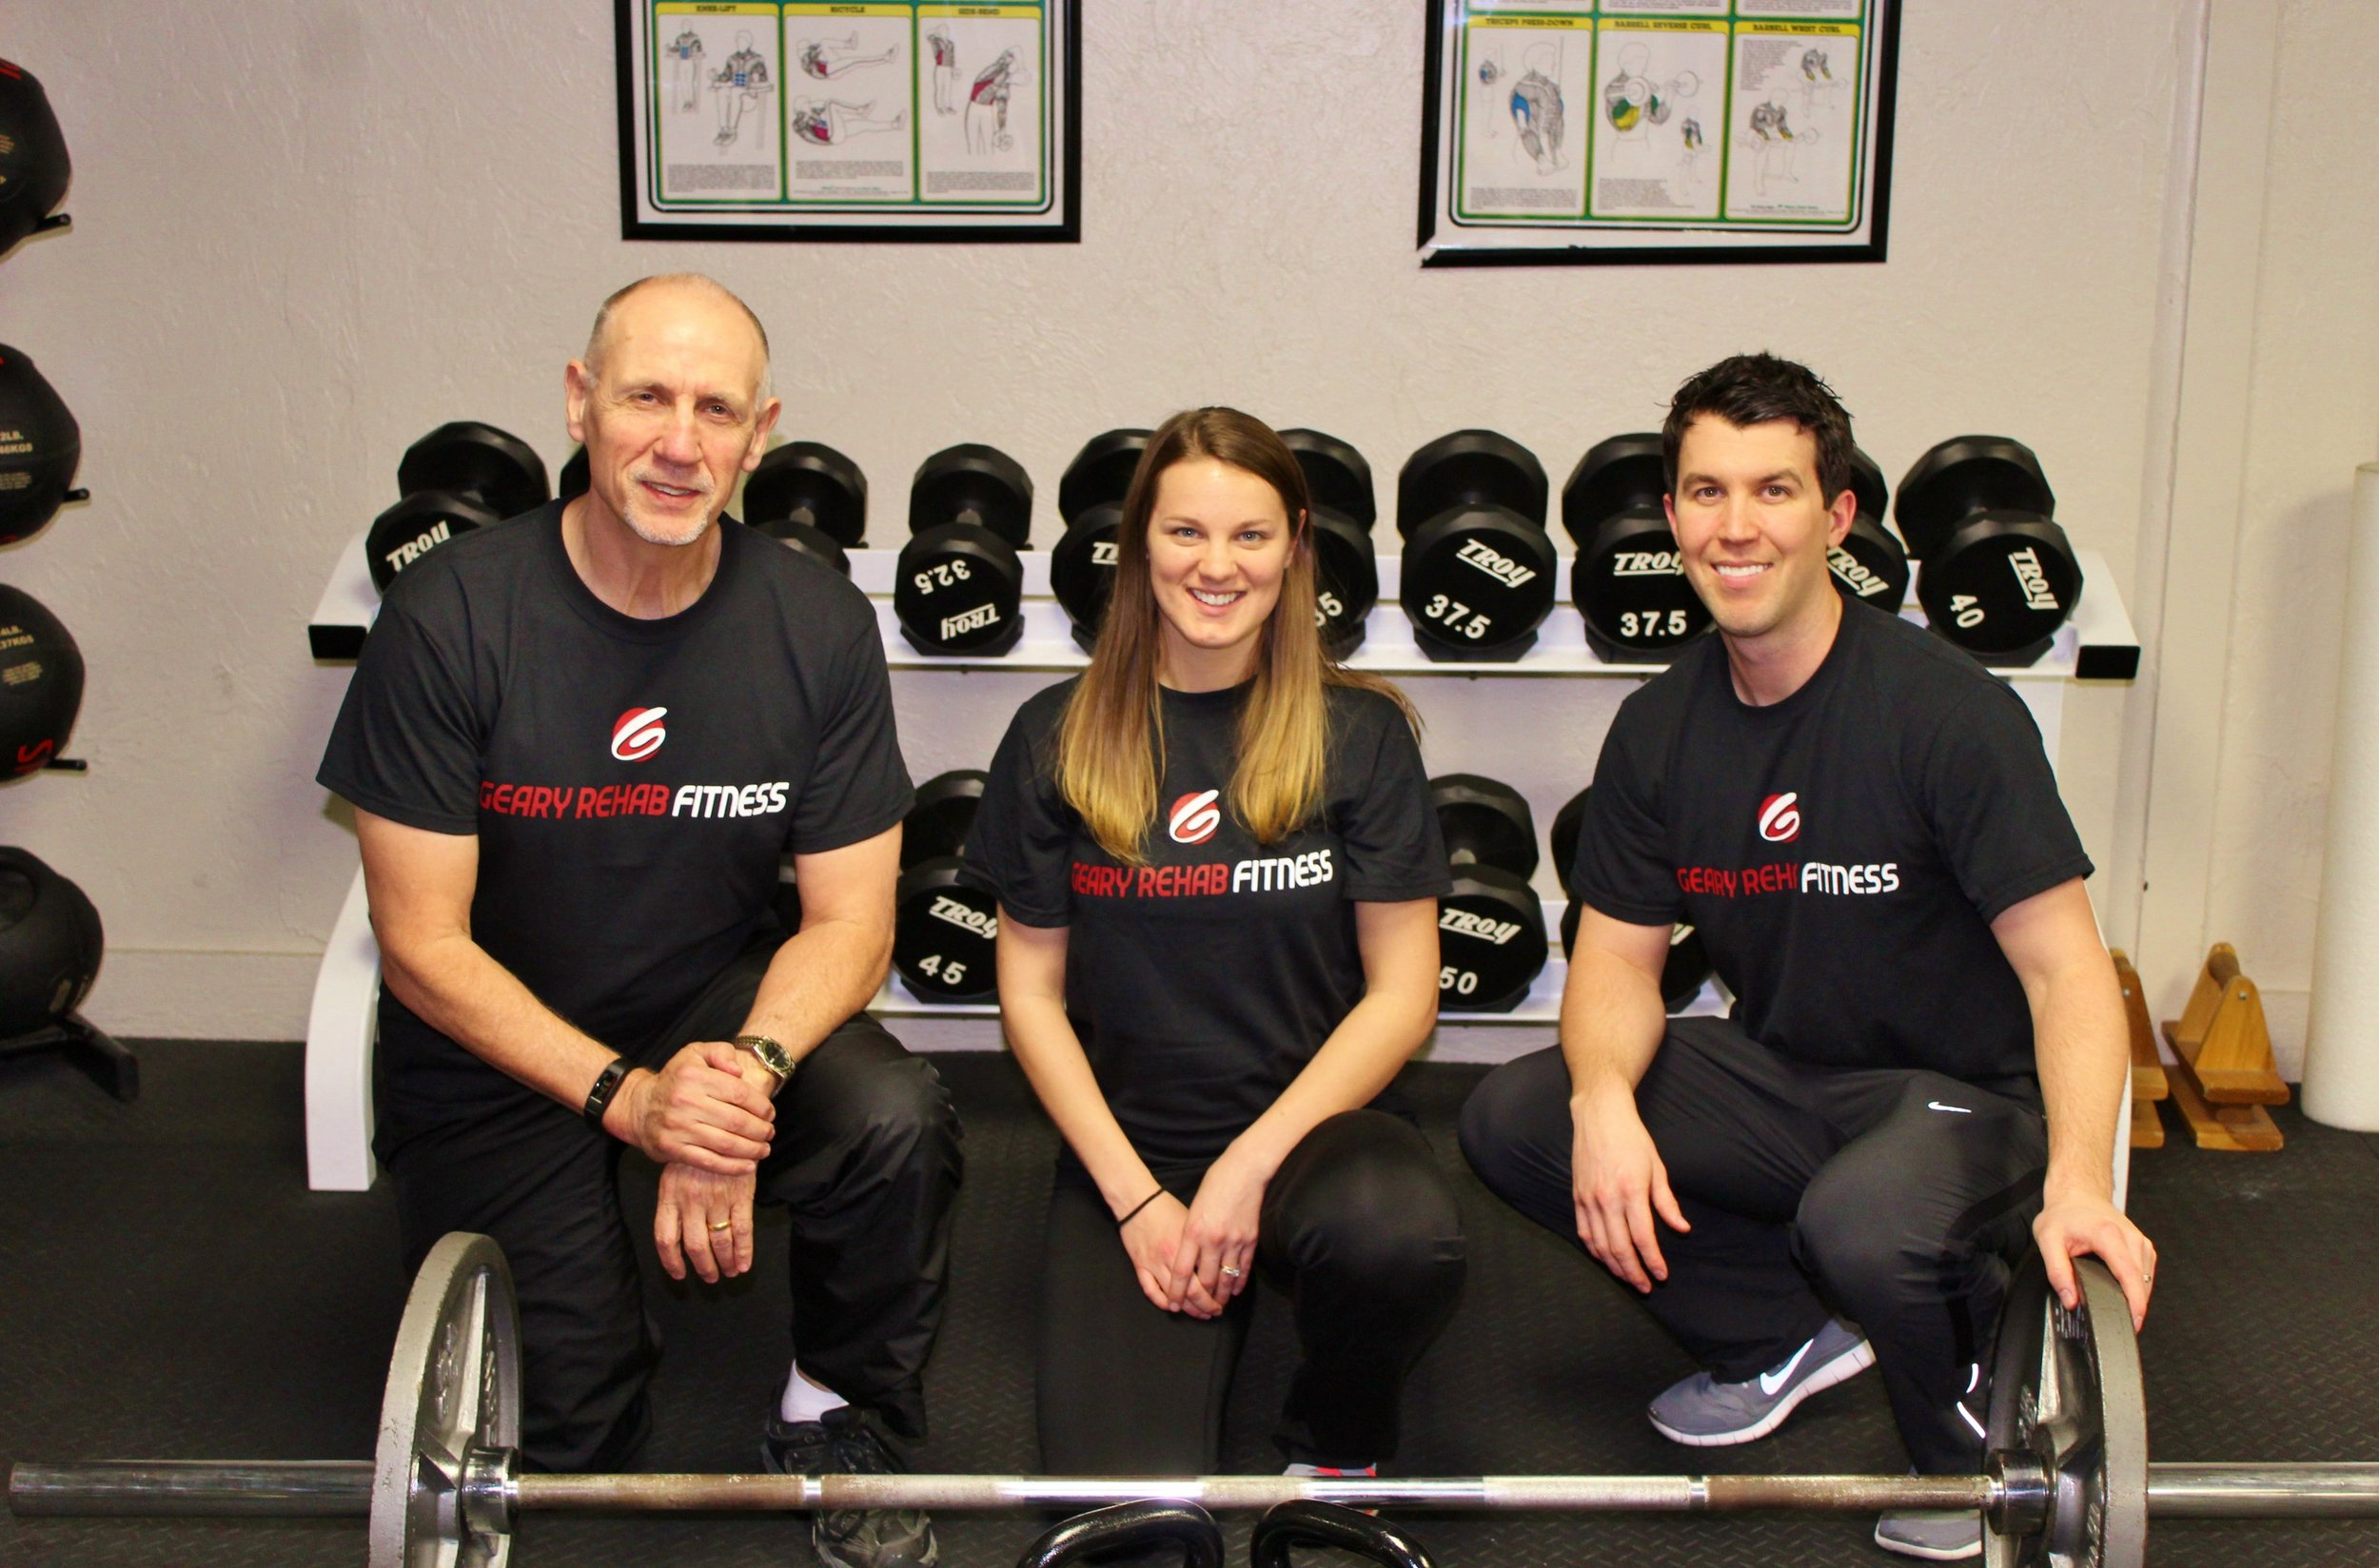 DEDICATED COACH    Our Certified personal trainers are committed to helping you reach your health and fitness goals.